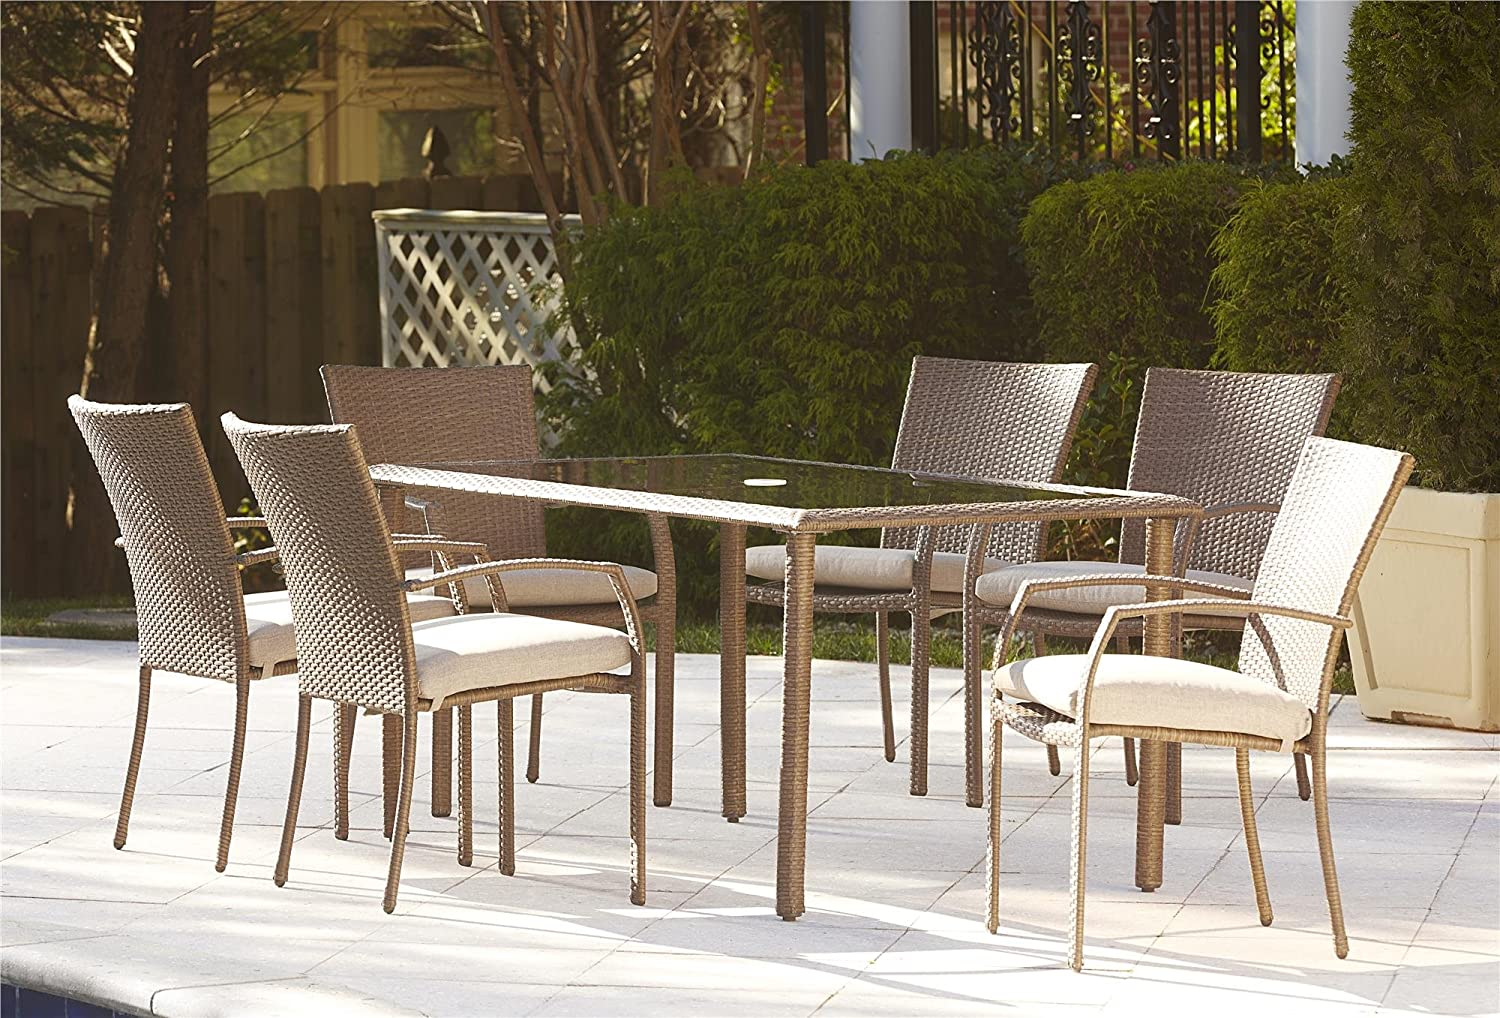 set all alpha furniture aluminum weather outdoor dining leisure patio wicker sacramento govenor jensen